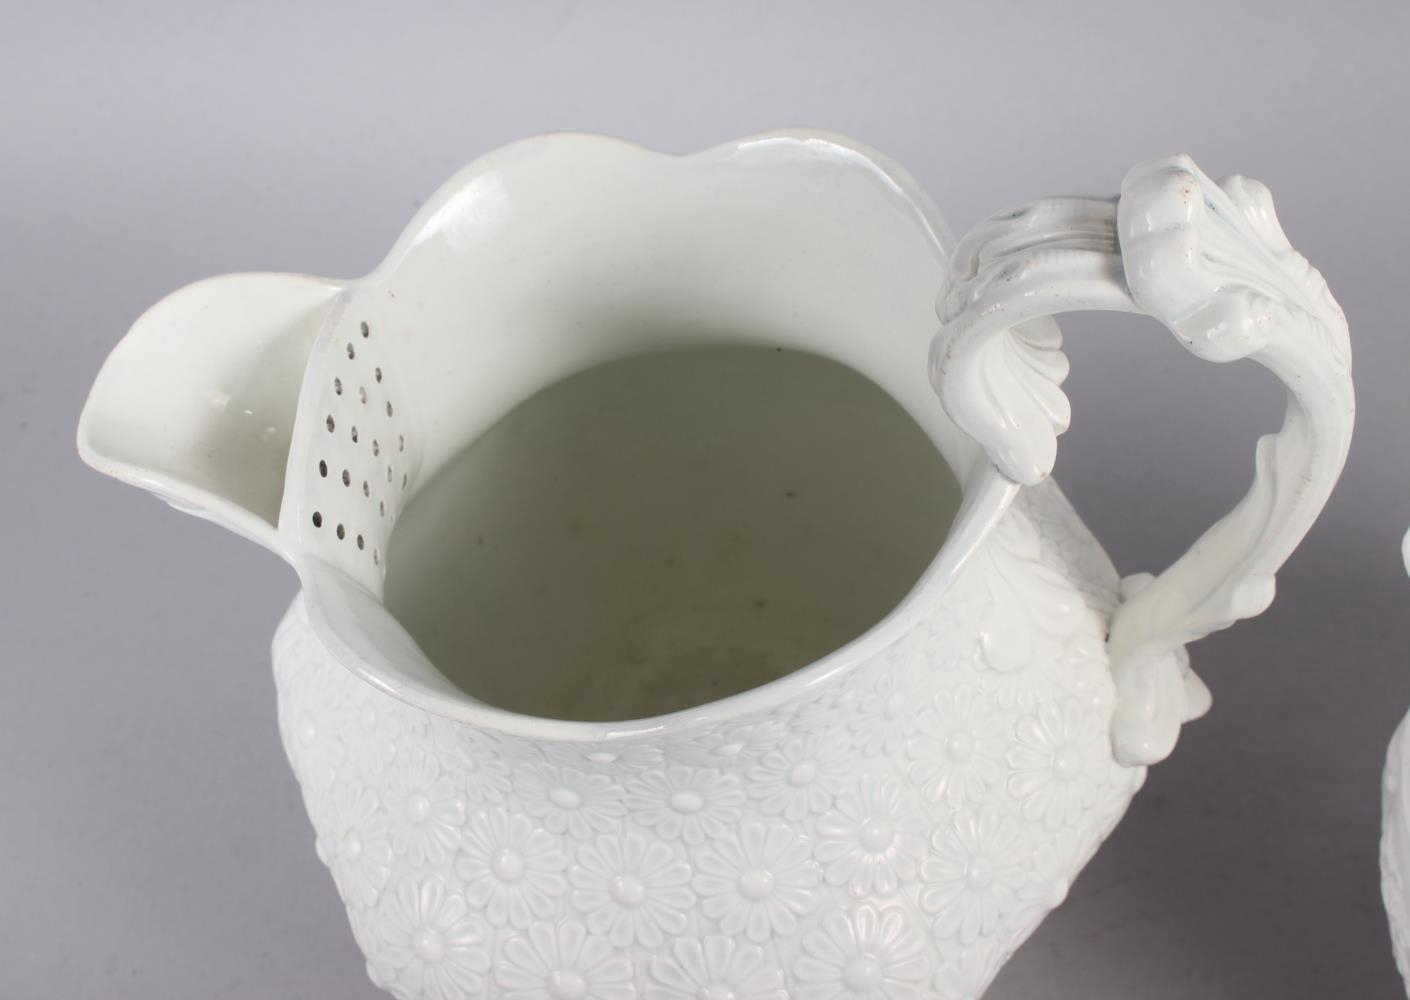 An early 19th century Don Pottery tisaniere and cover with cream stoneware body moulded daisy heads, - Image 3 of 5